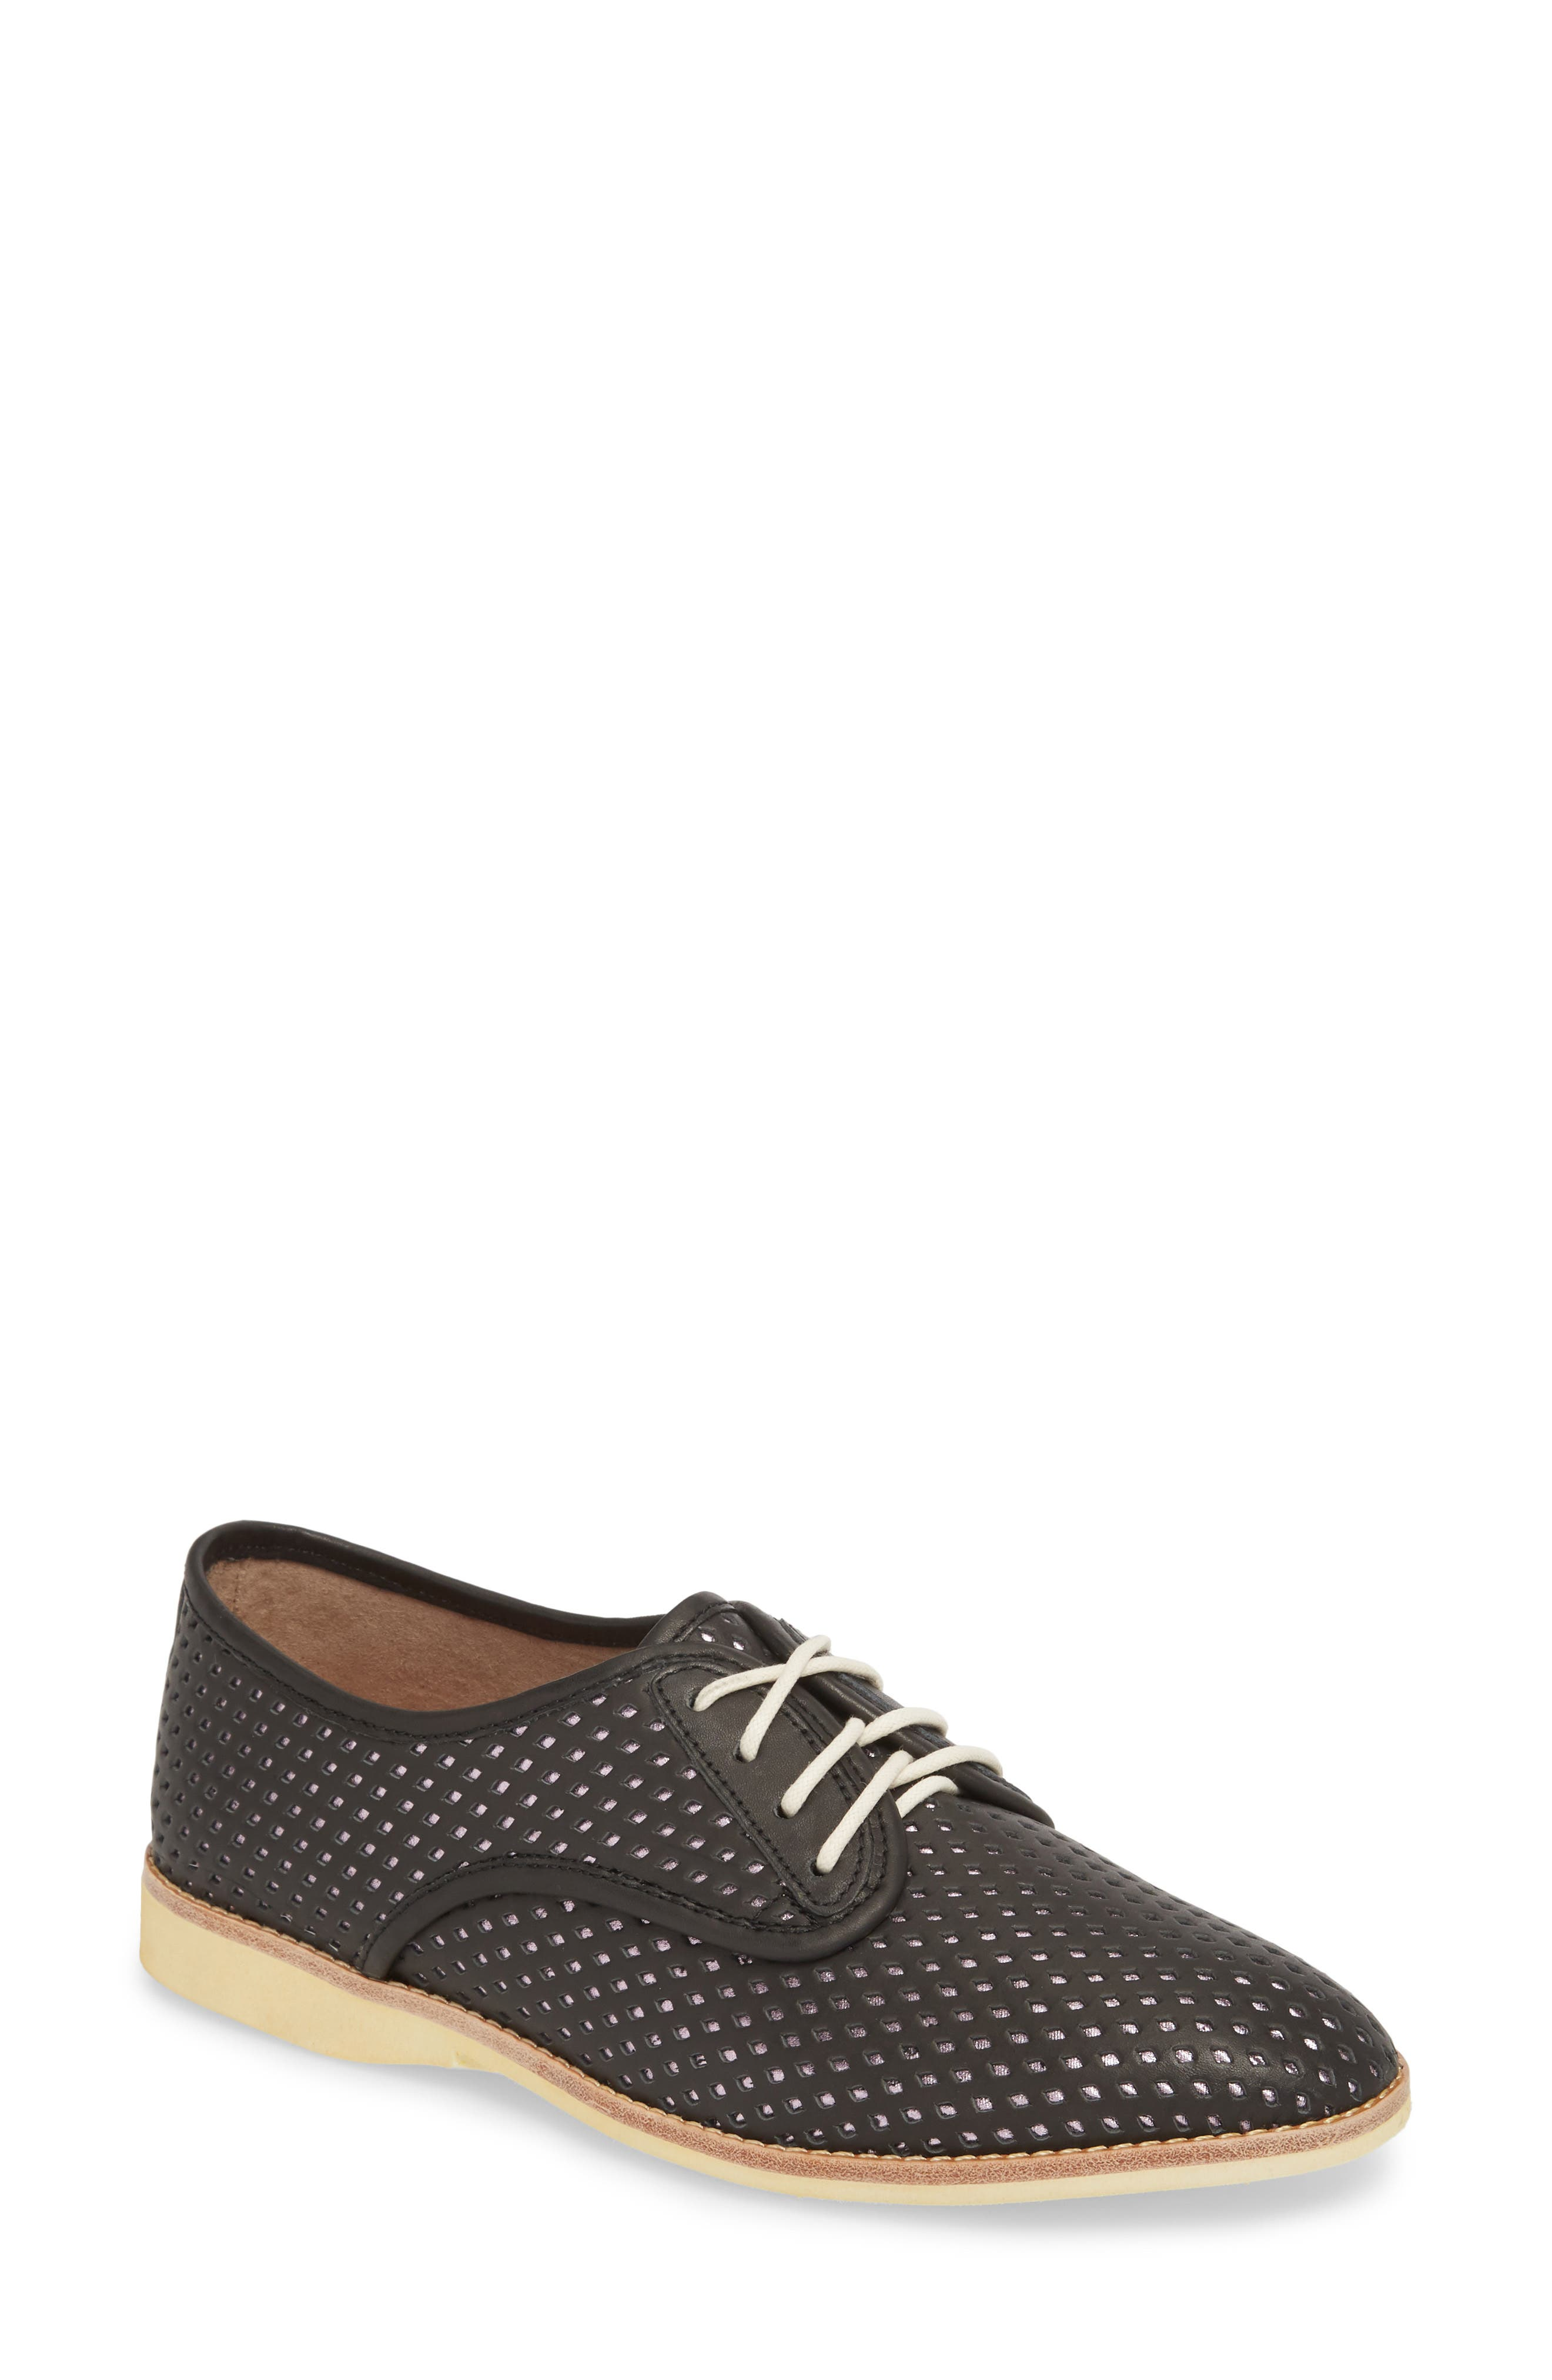 Punch Perforated Derby,                         Main,                         color, BLACK/ ROSE GOLD LEATHER